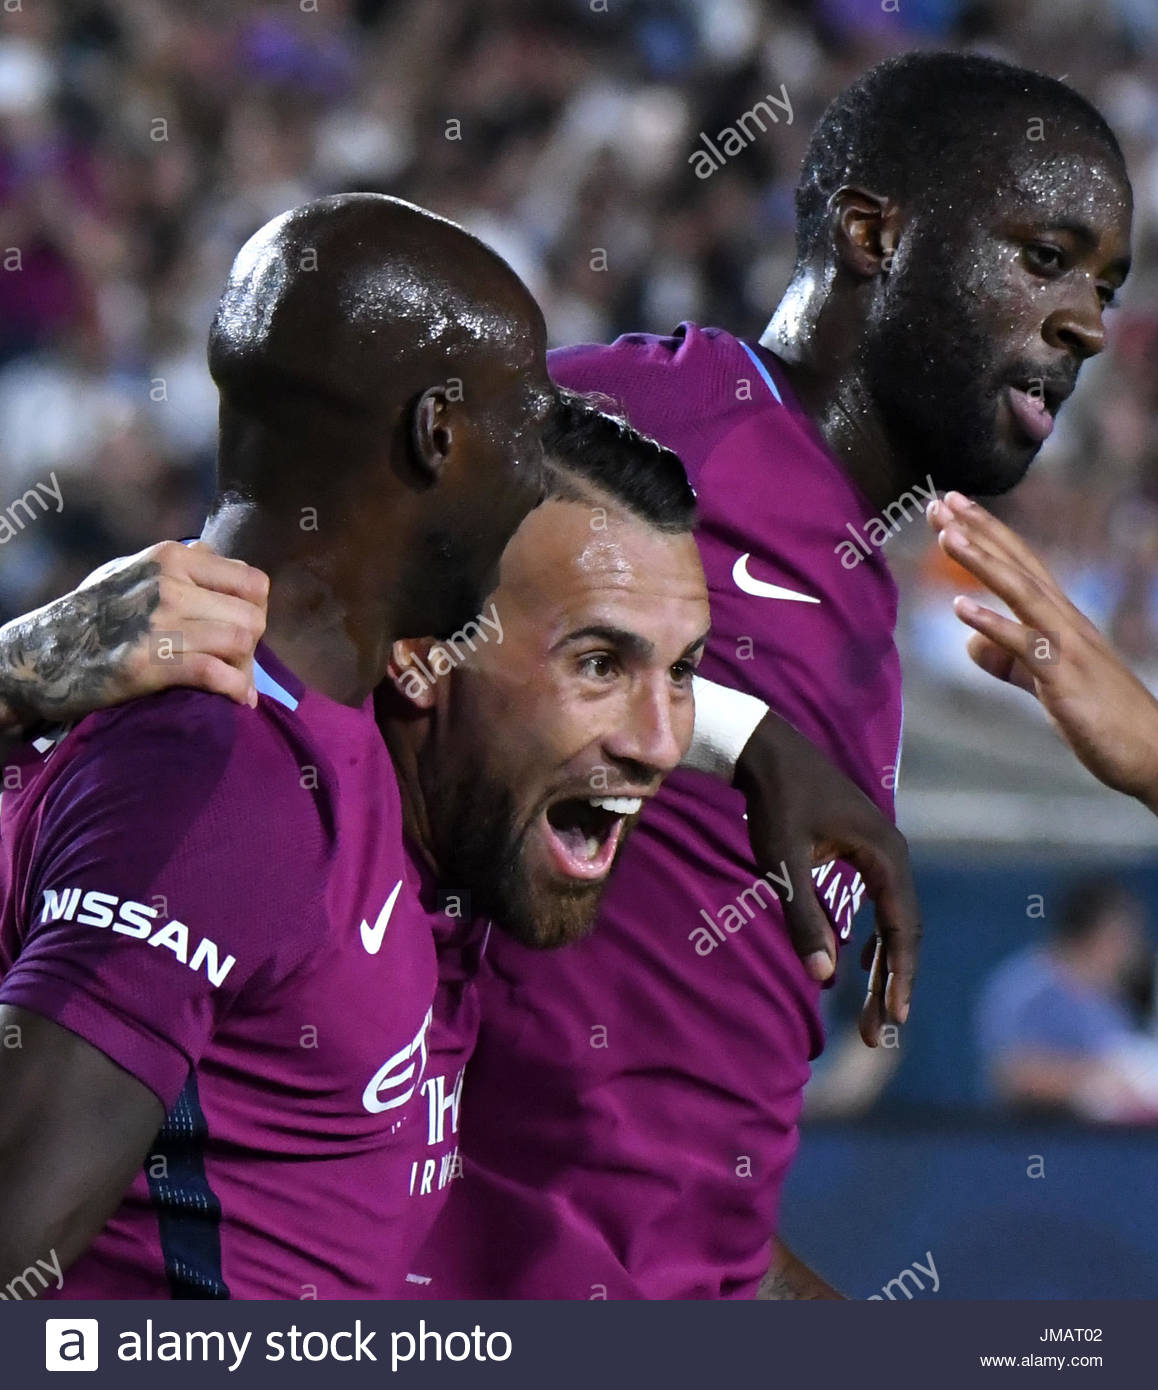 Los Angeles, California, USA. 26th July, 2017. Manchester City Defender Nicol''¡s Otamendi, center, reacts after scoring against Real Madrid FC in the second half during the International Champions Cup Soccer match at the Los Angeles Memorial Coliseum on Wednesday, July 26, 2017 in Los Angeles. (Photo by Keith Birmingham, Pasadena Star-News/SCNG) Credit: San Gabriel Valley Tribune/ZUMA Wire/Alamy Live News - Stock Image